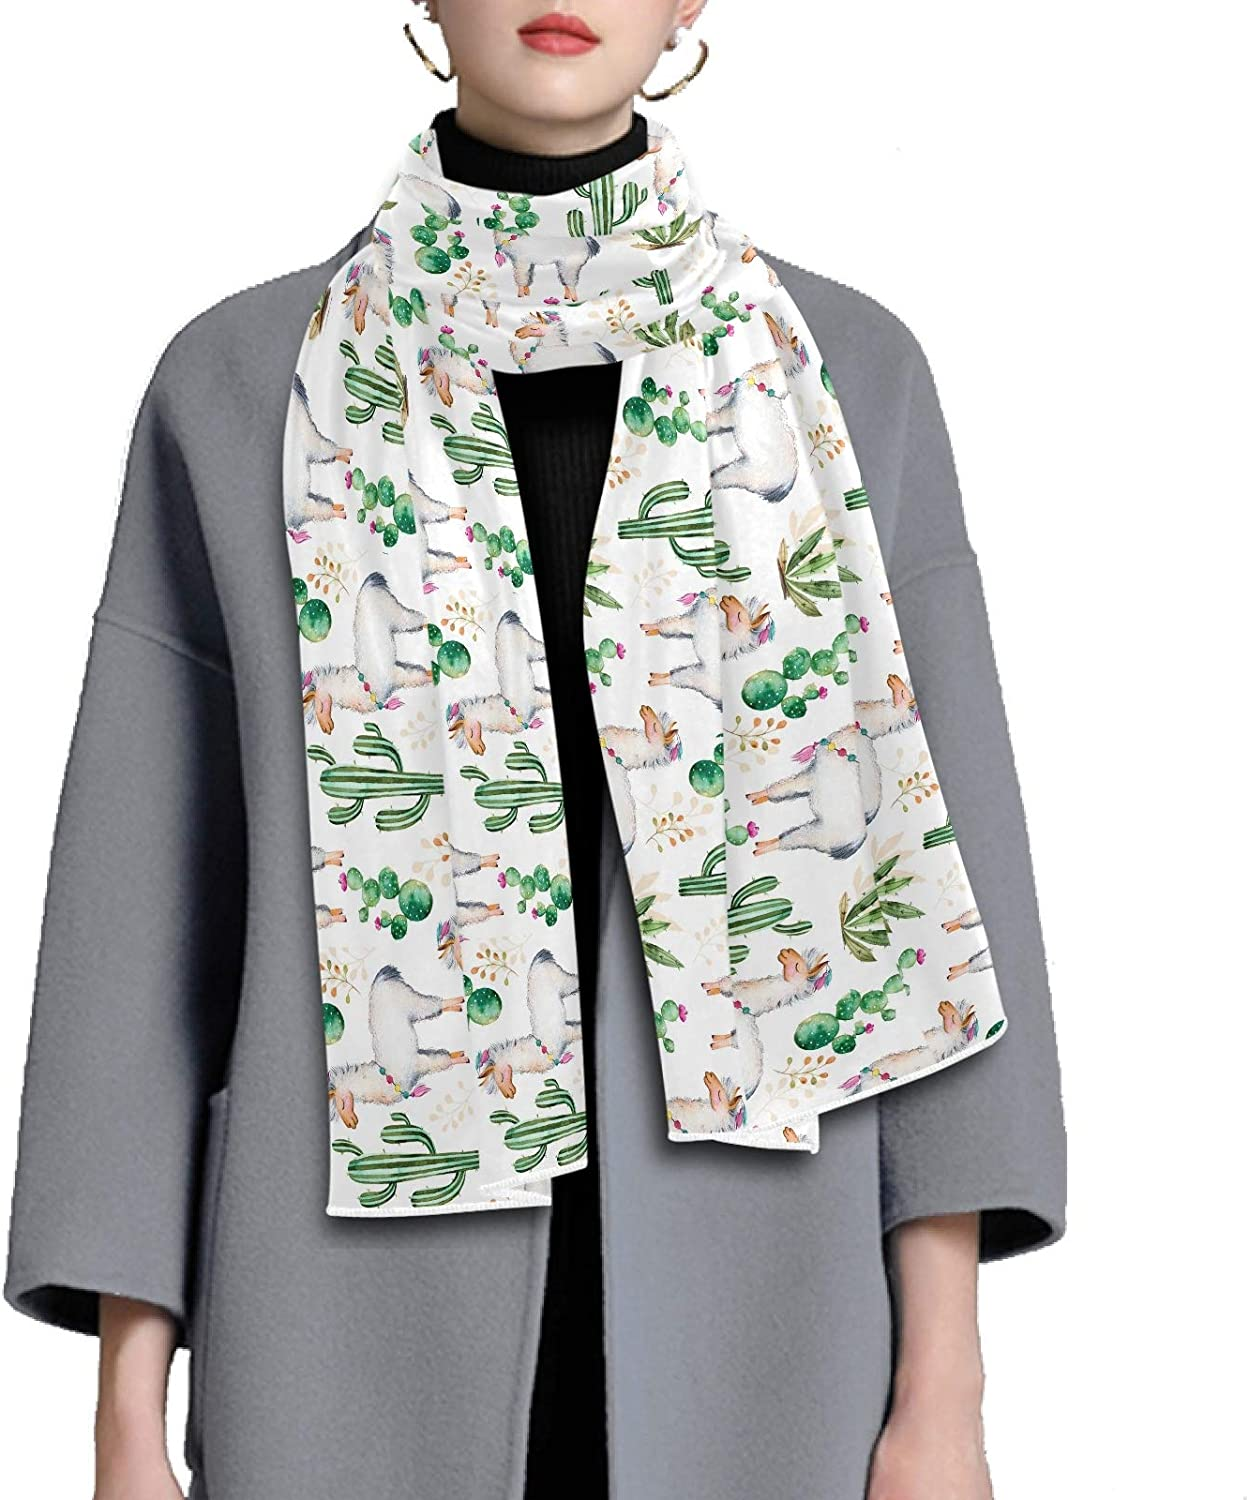 Scarf for Women and Men Watercolor Cactus Llama Alpaca Blanket Shawl Scarf wraps Warm soft Winter Oversized Scarves Lightweight